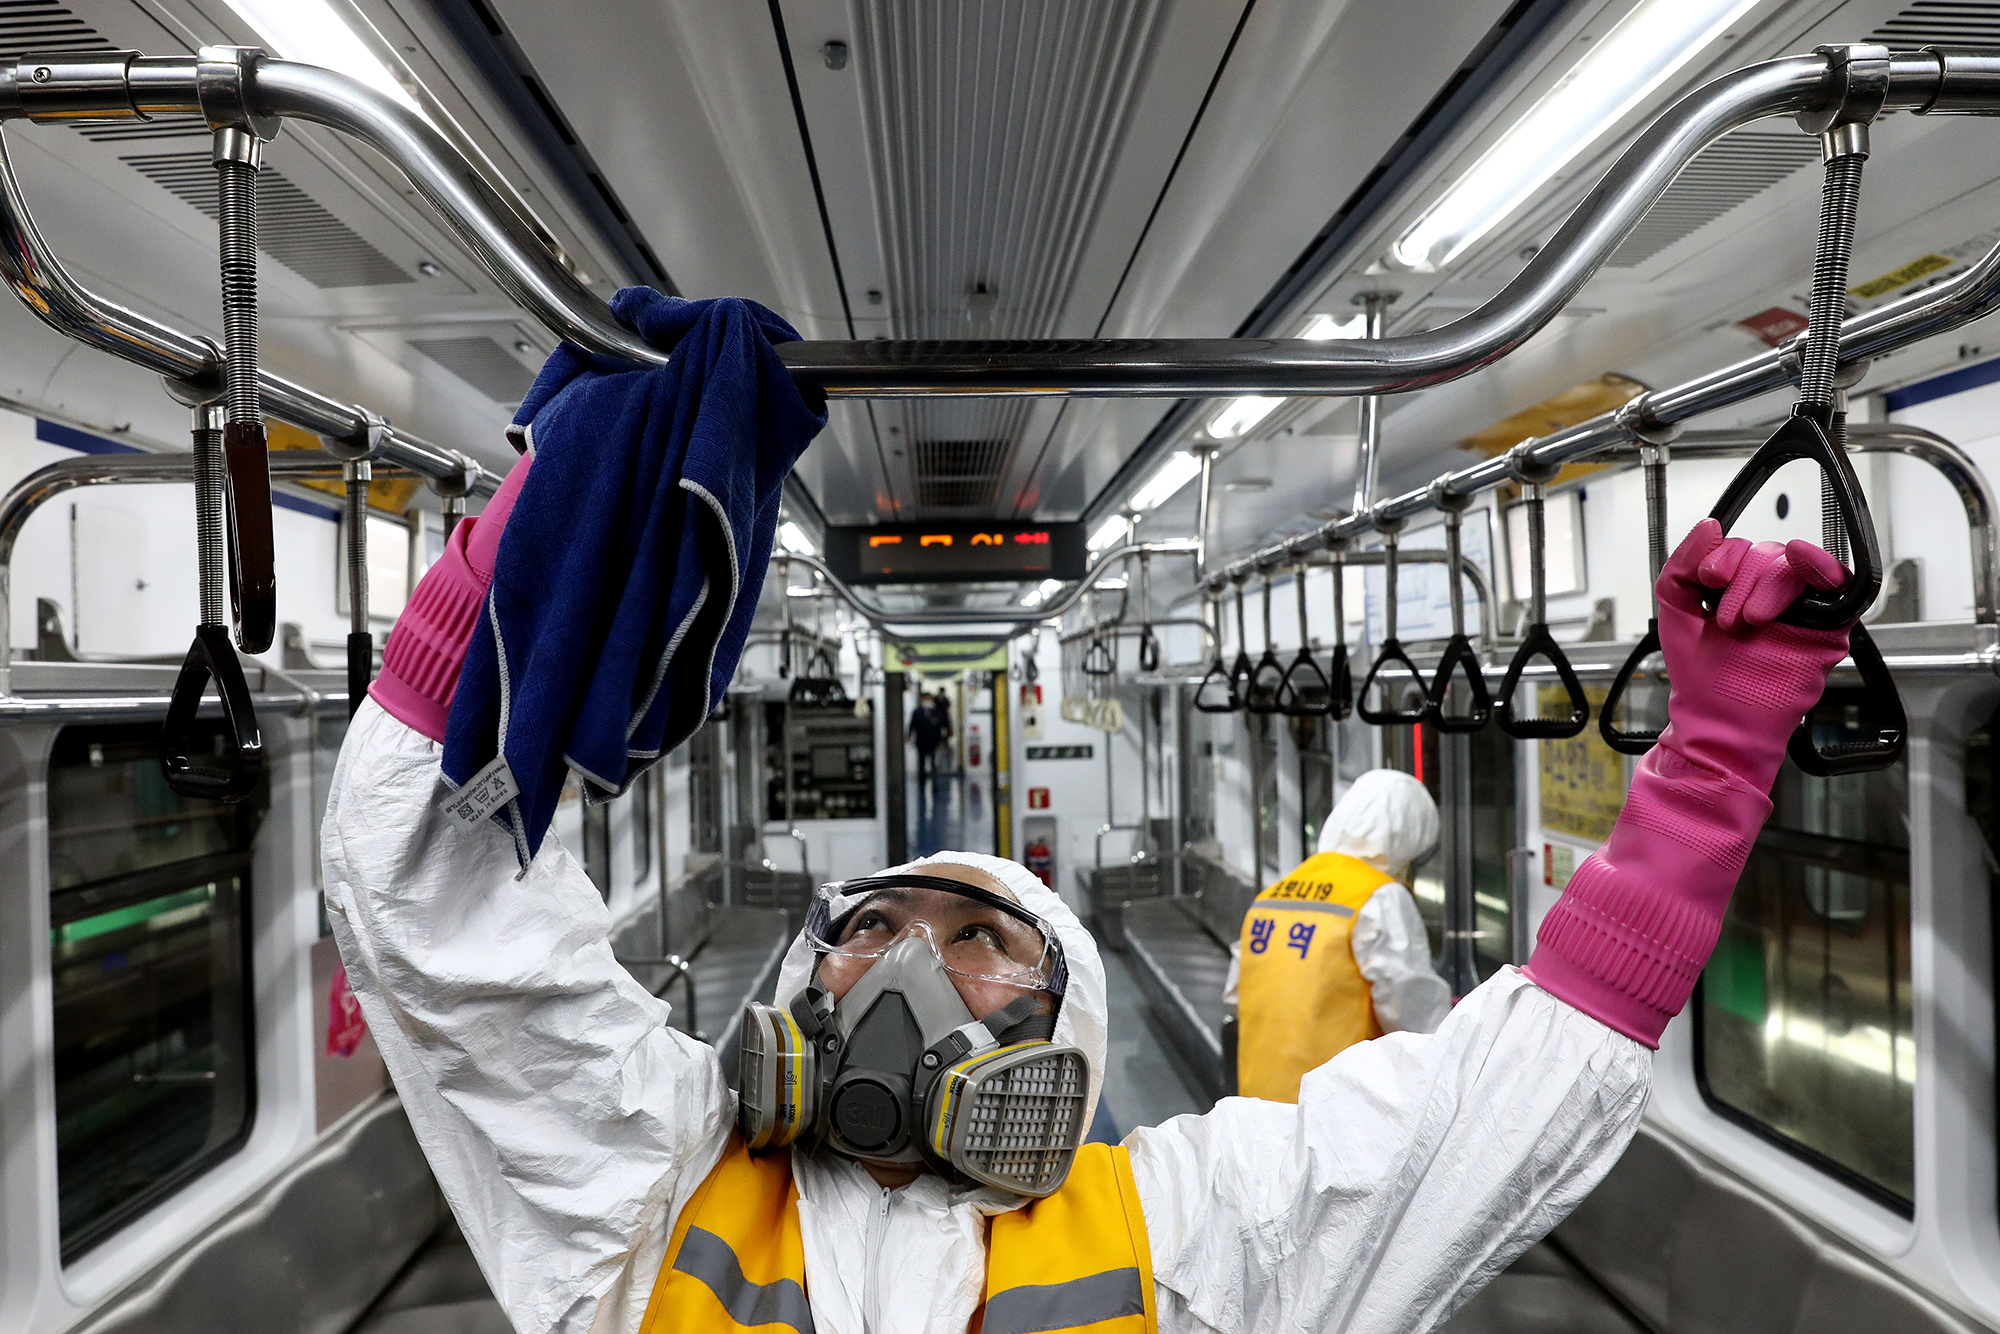 Disinfection workers wearing protective gear spray anti-septic solution against the coronavirus in a subway at Seoul metro railway base on March 11 in Seoul, South Korea.